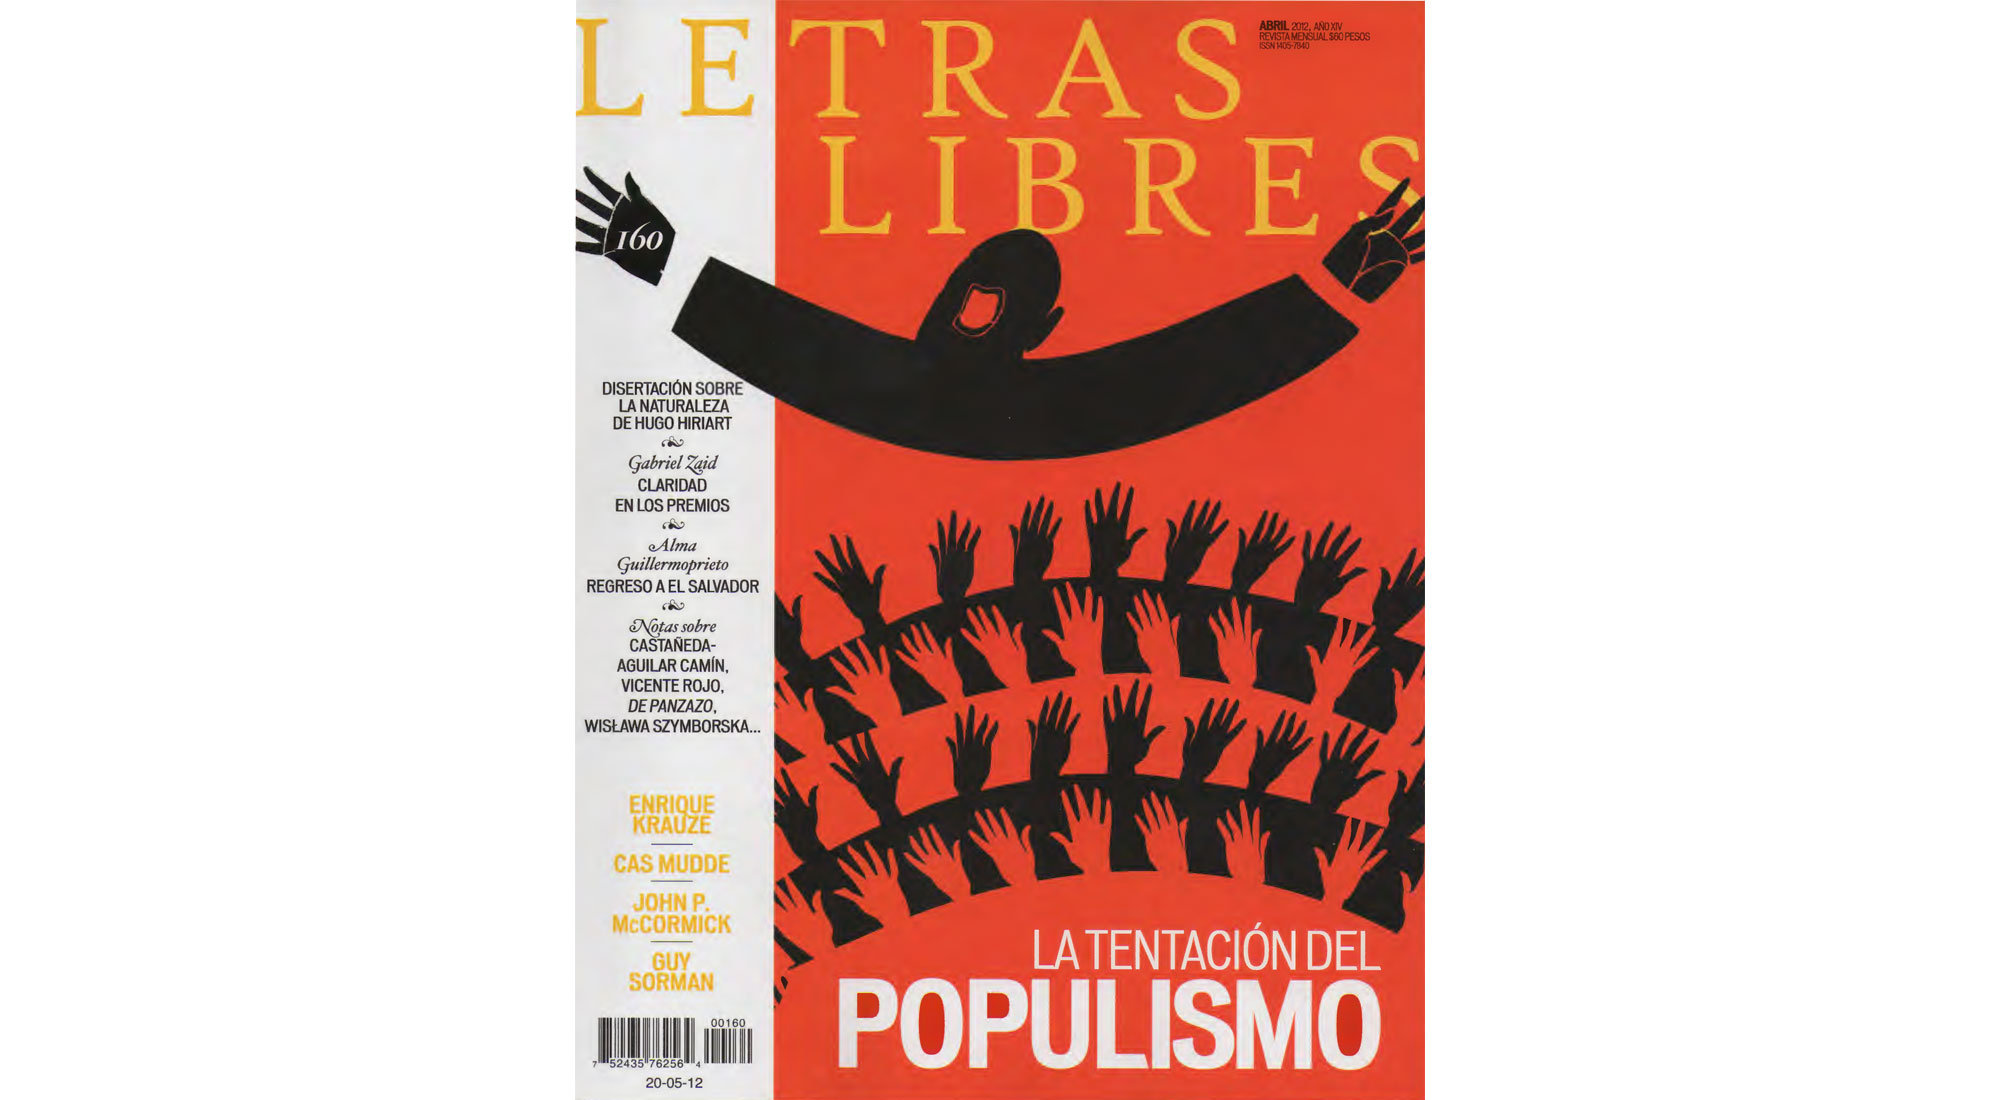 Letras Libres Revista Our Canon 100100 Architects Of The 21st Century